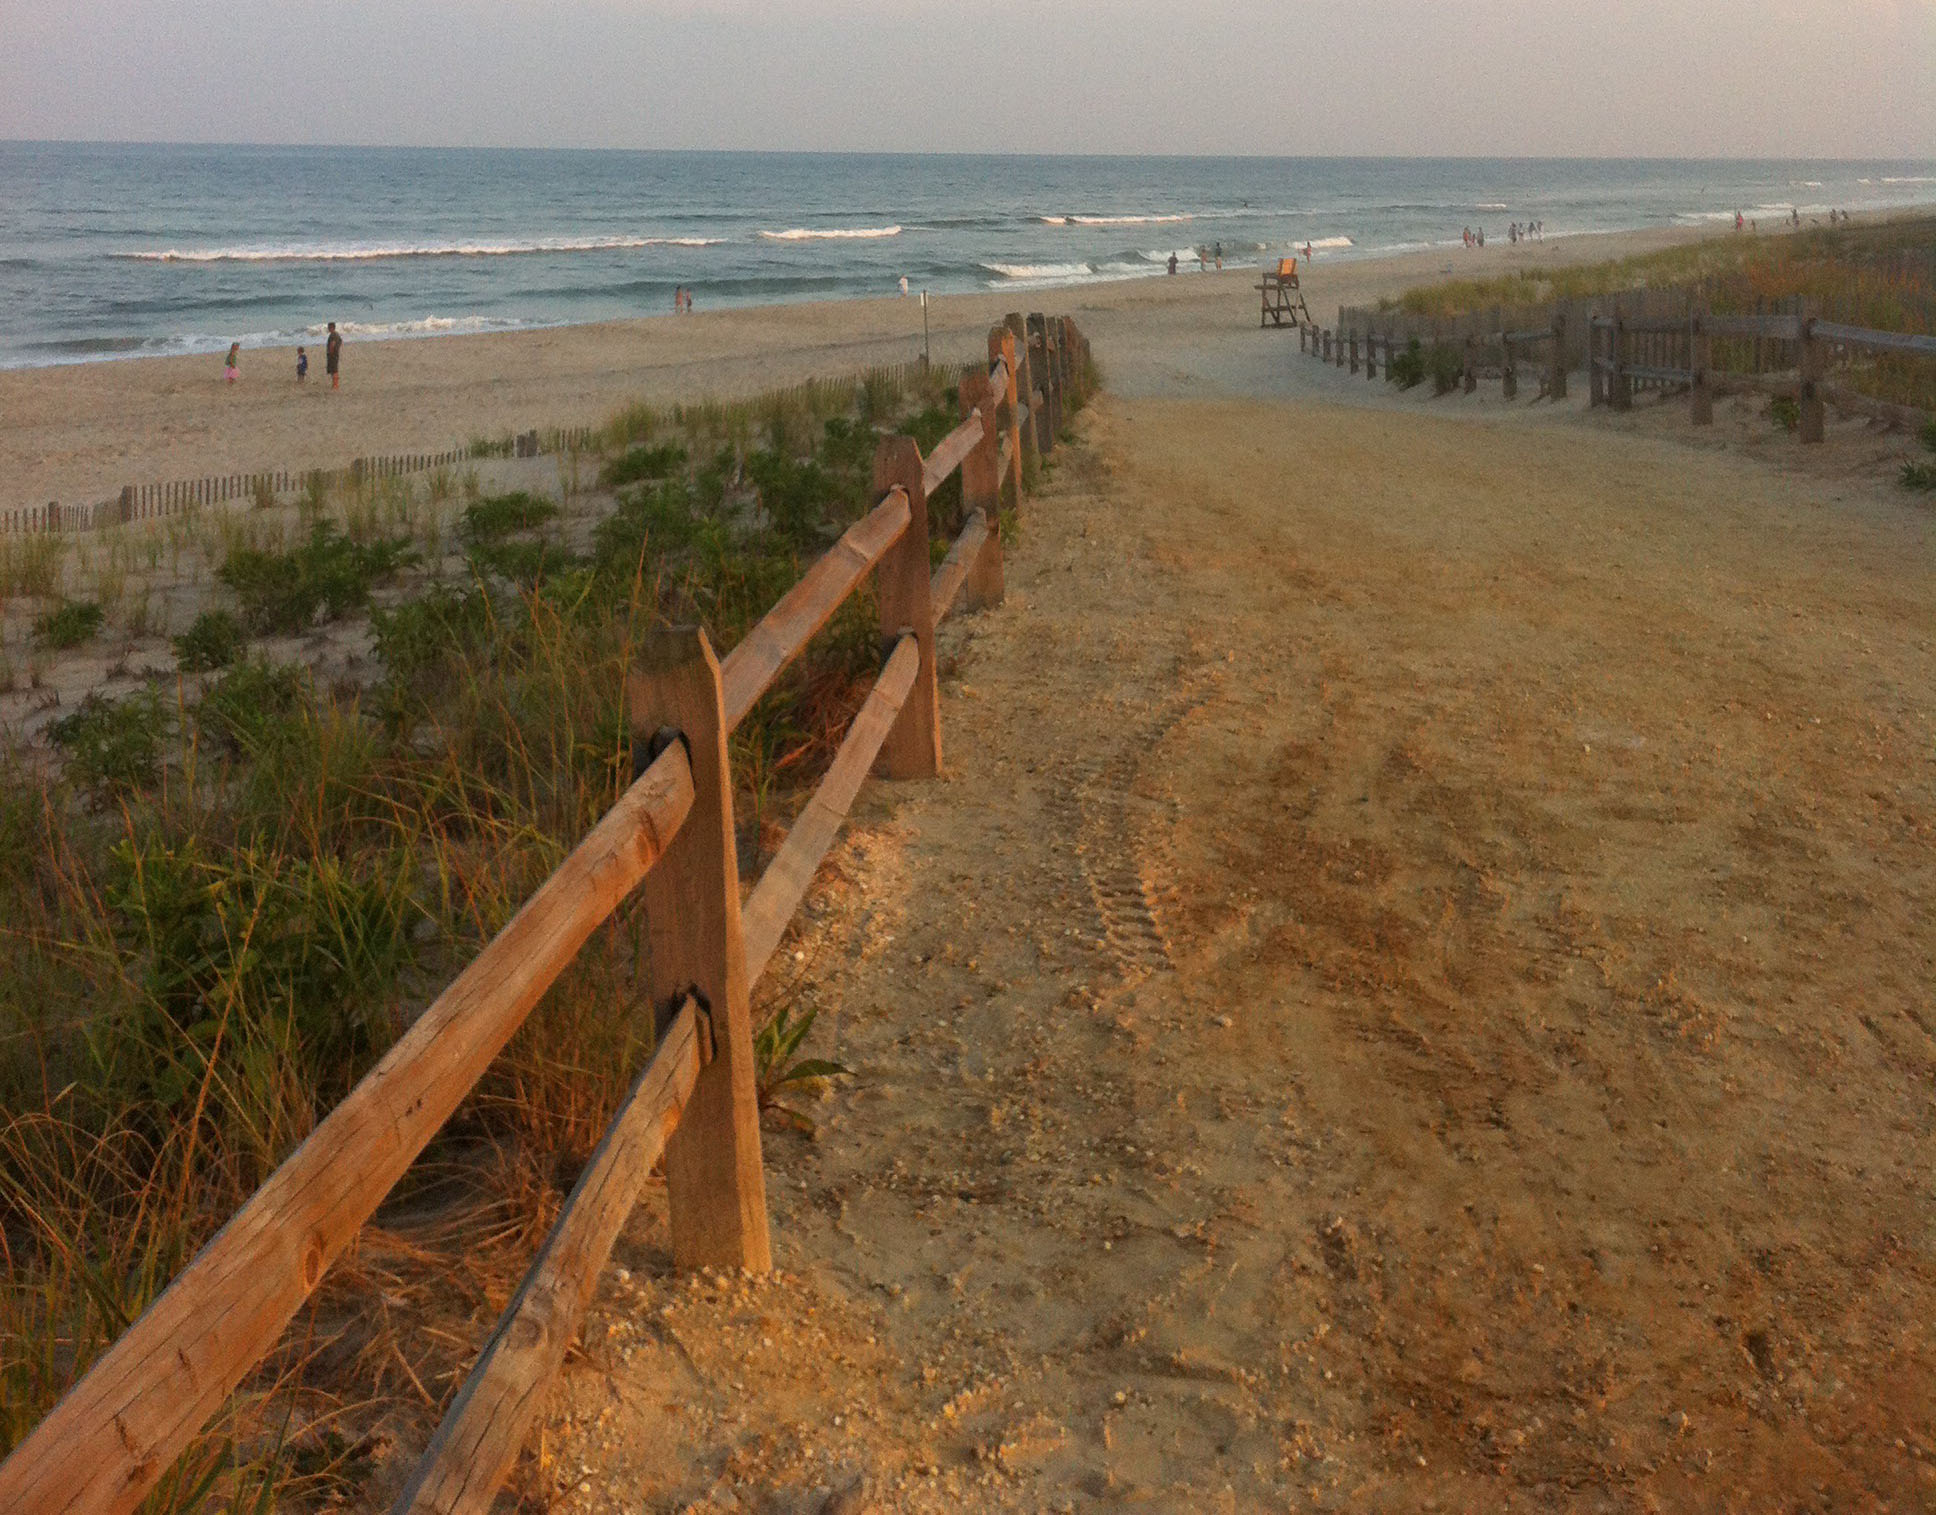 A beach entrance in Long Beach Island designed in a federal beach replenishment project. (Photo: Daniel Nee)